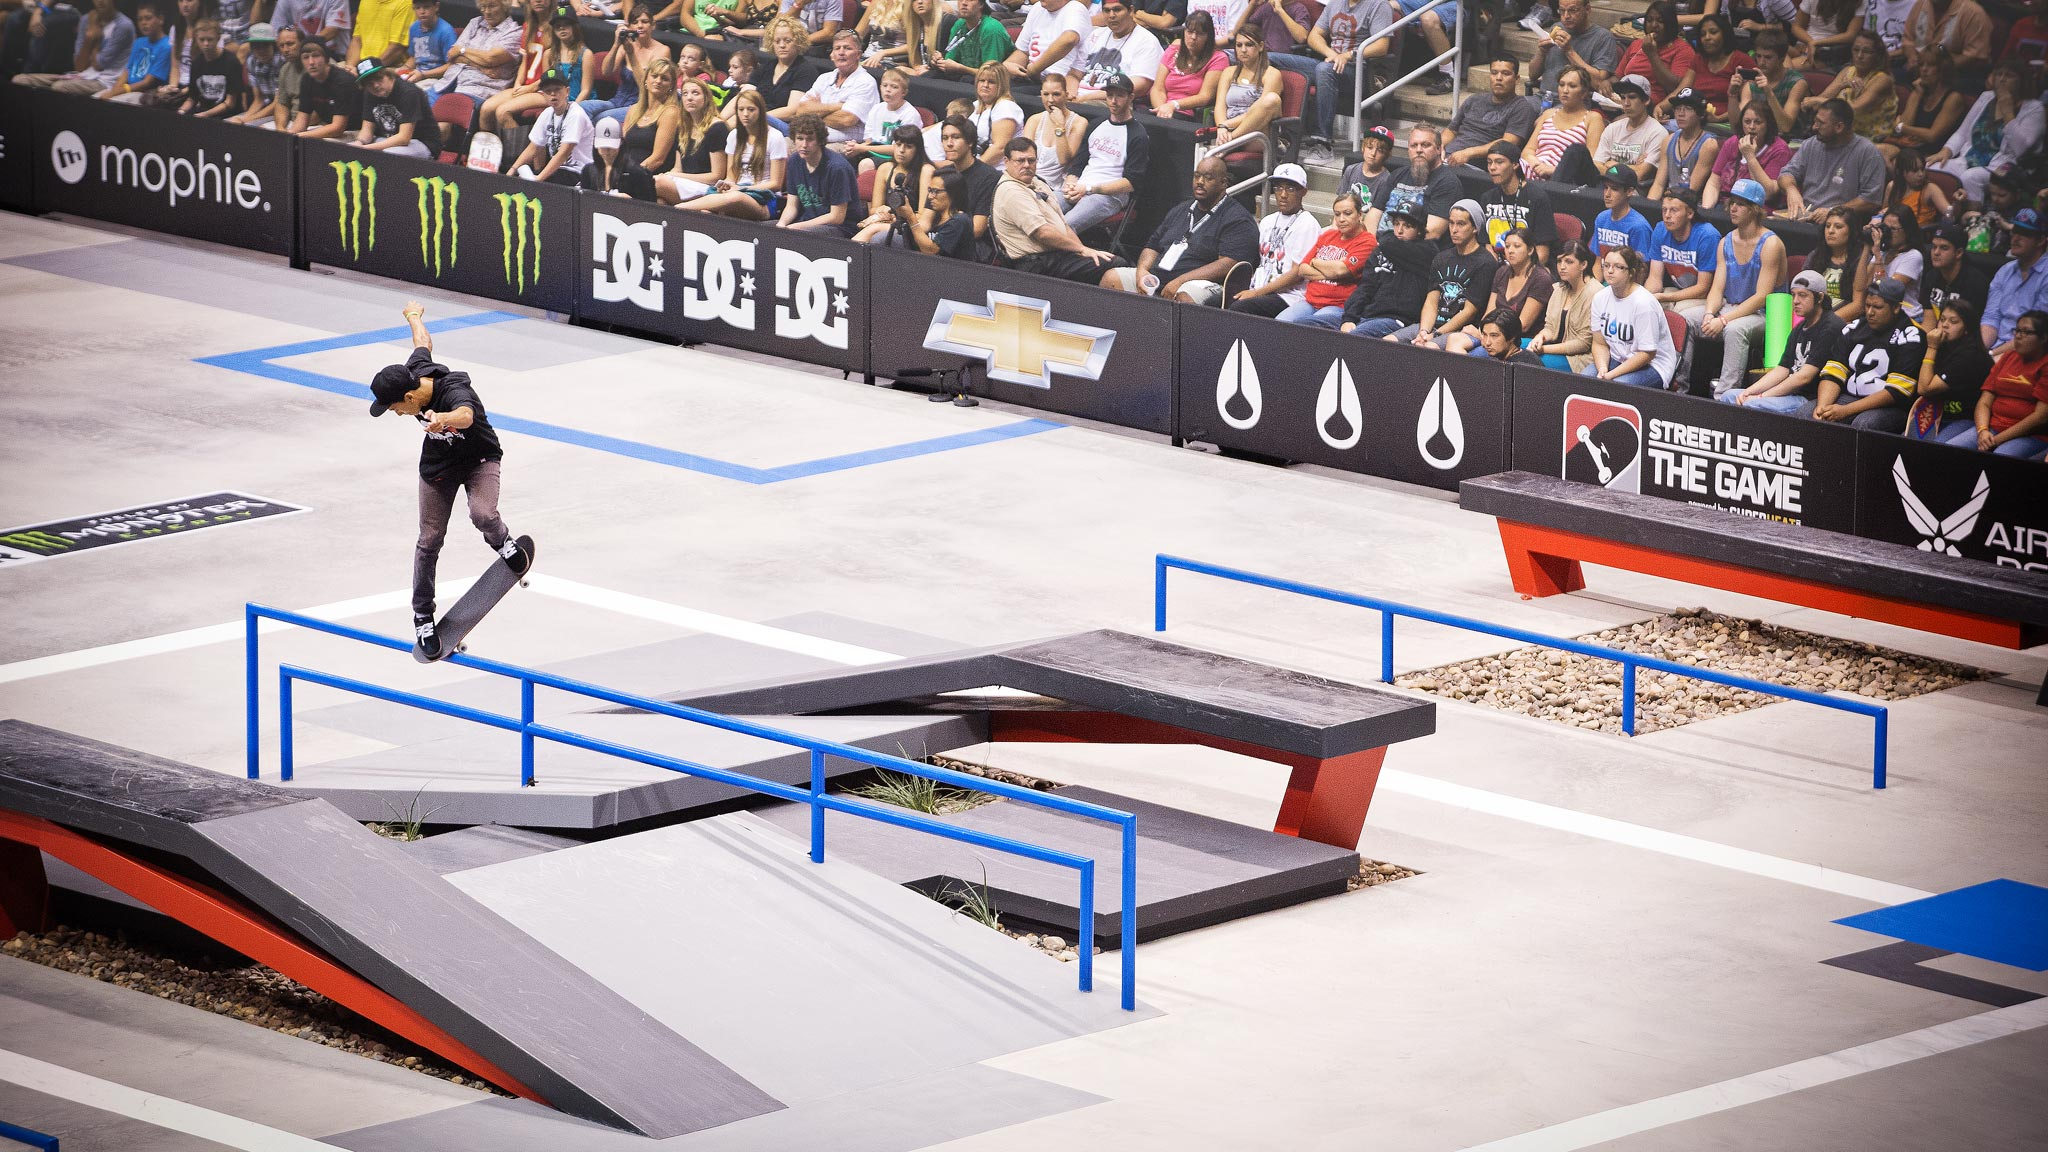 Street League at X Games